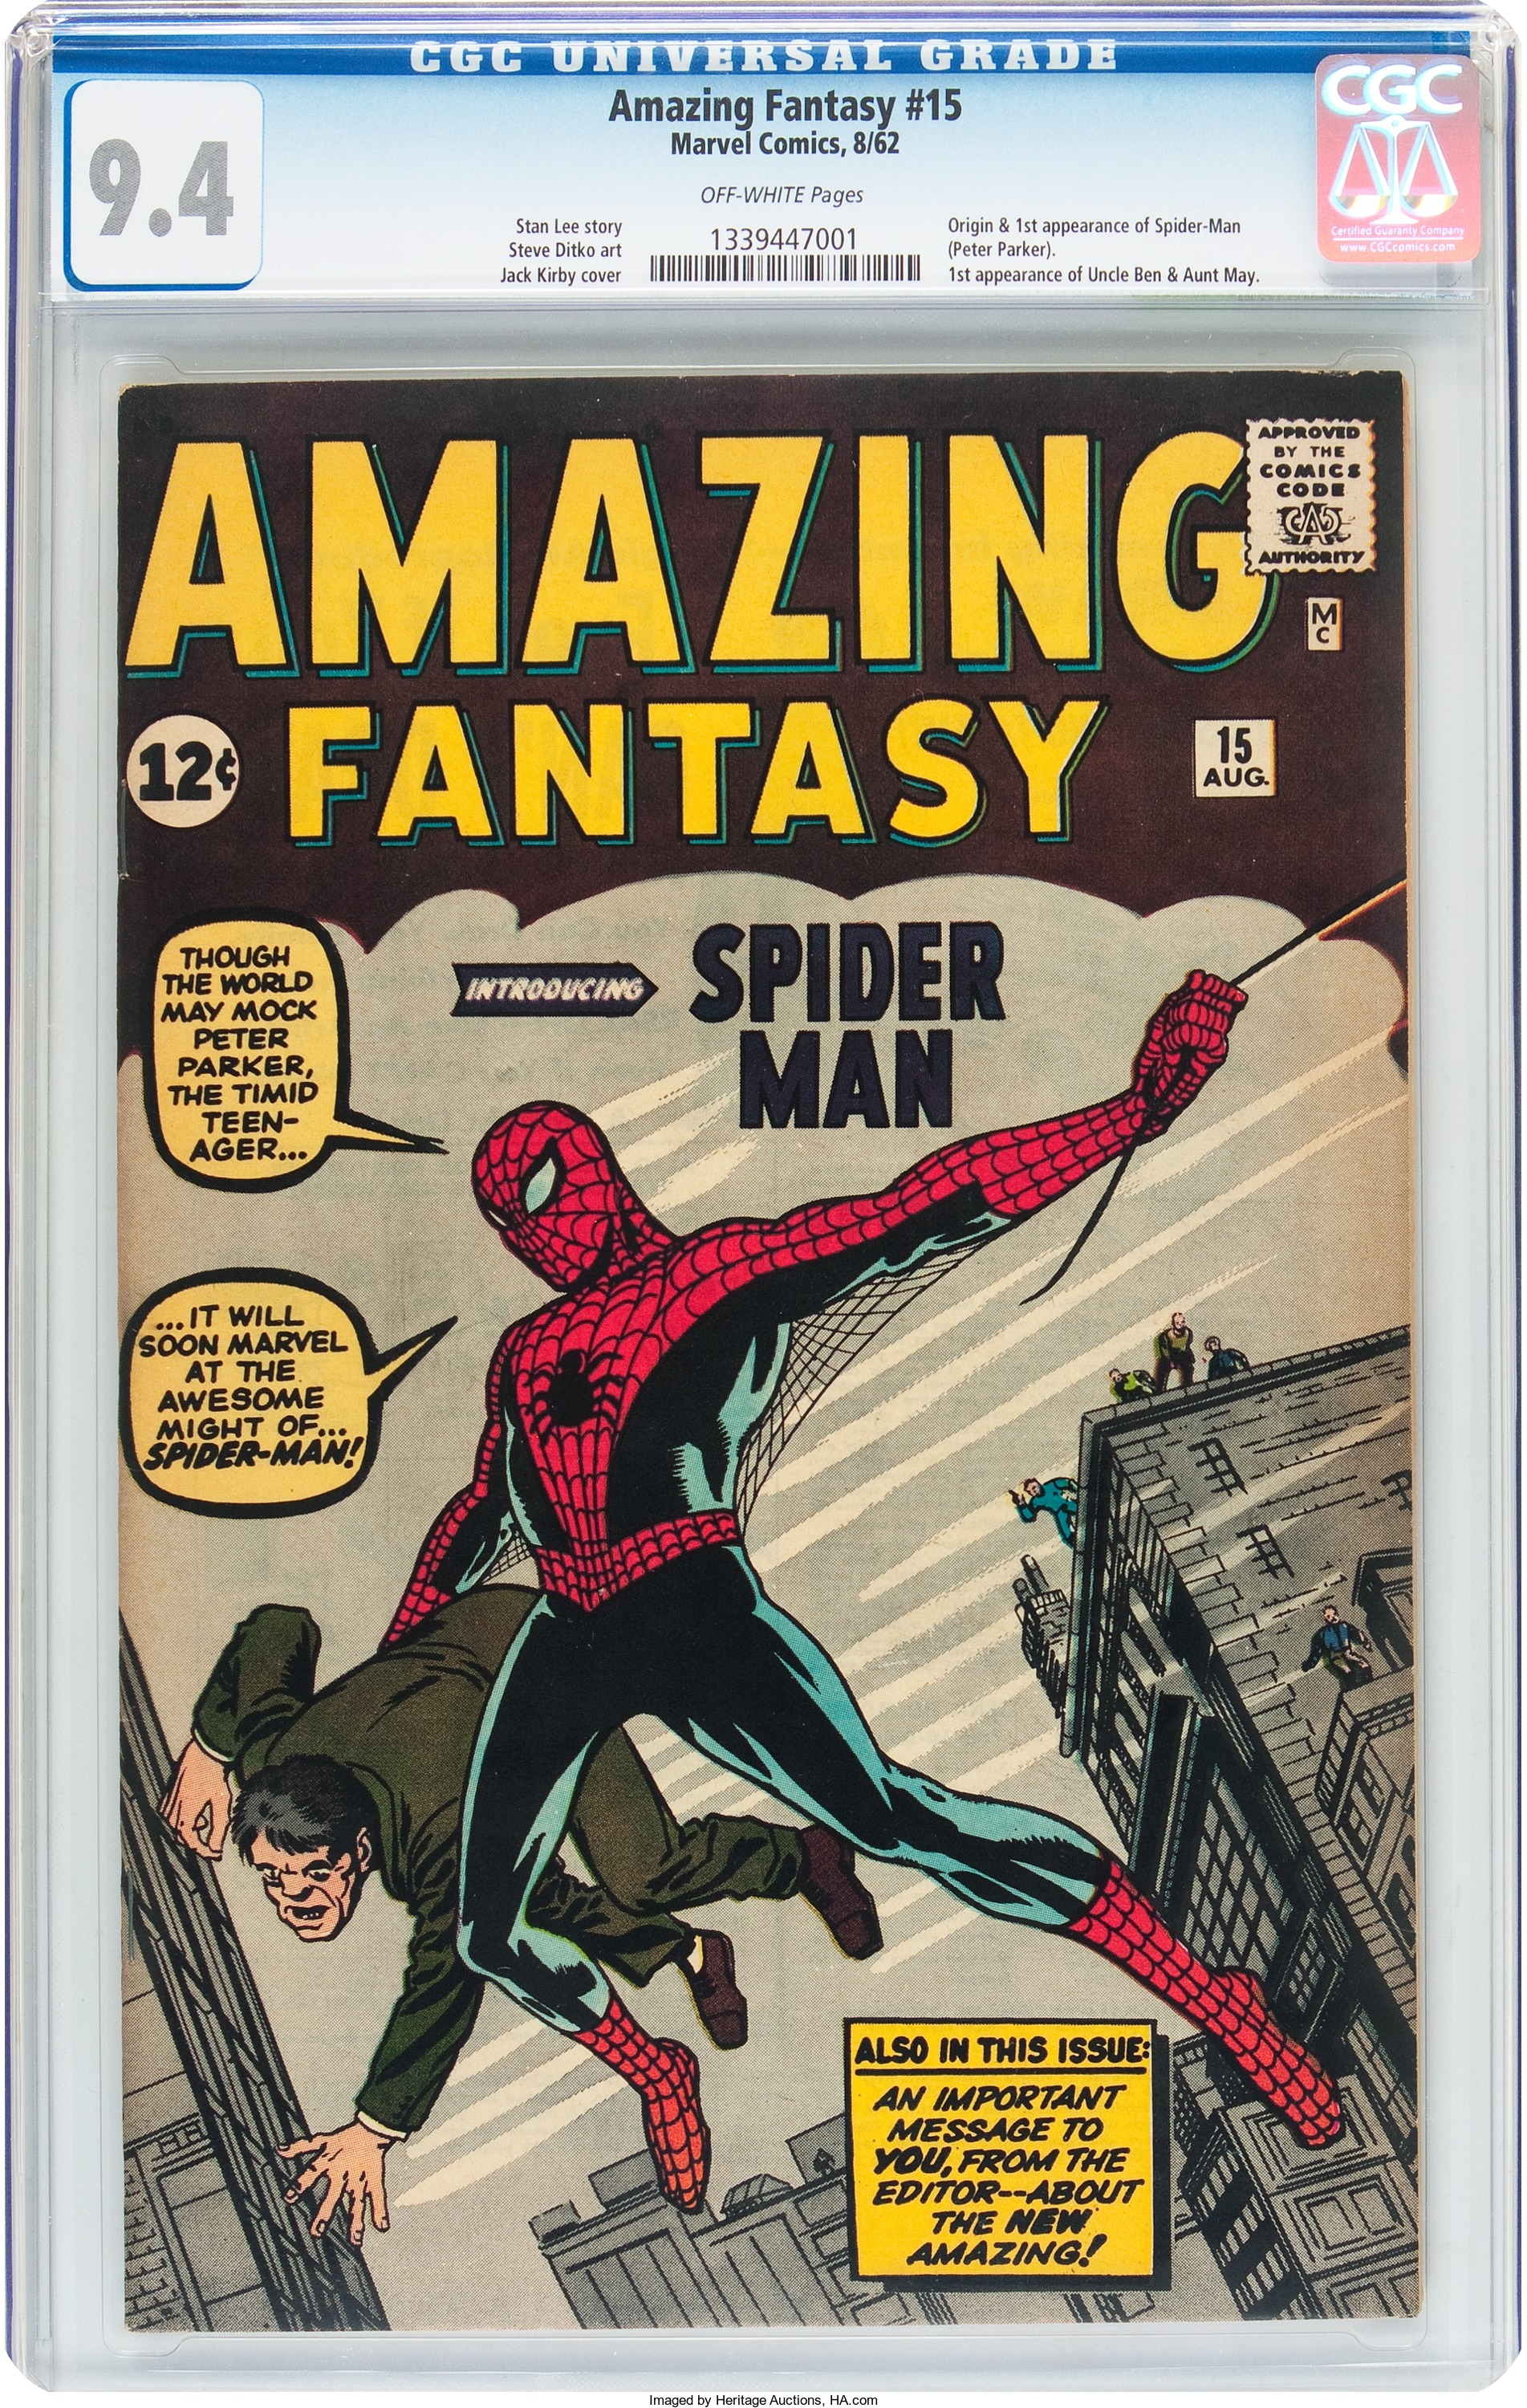 (Heritage Auctions)